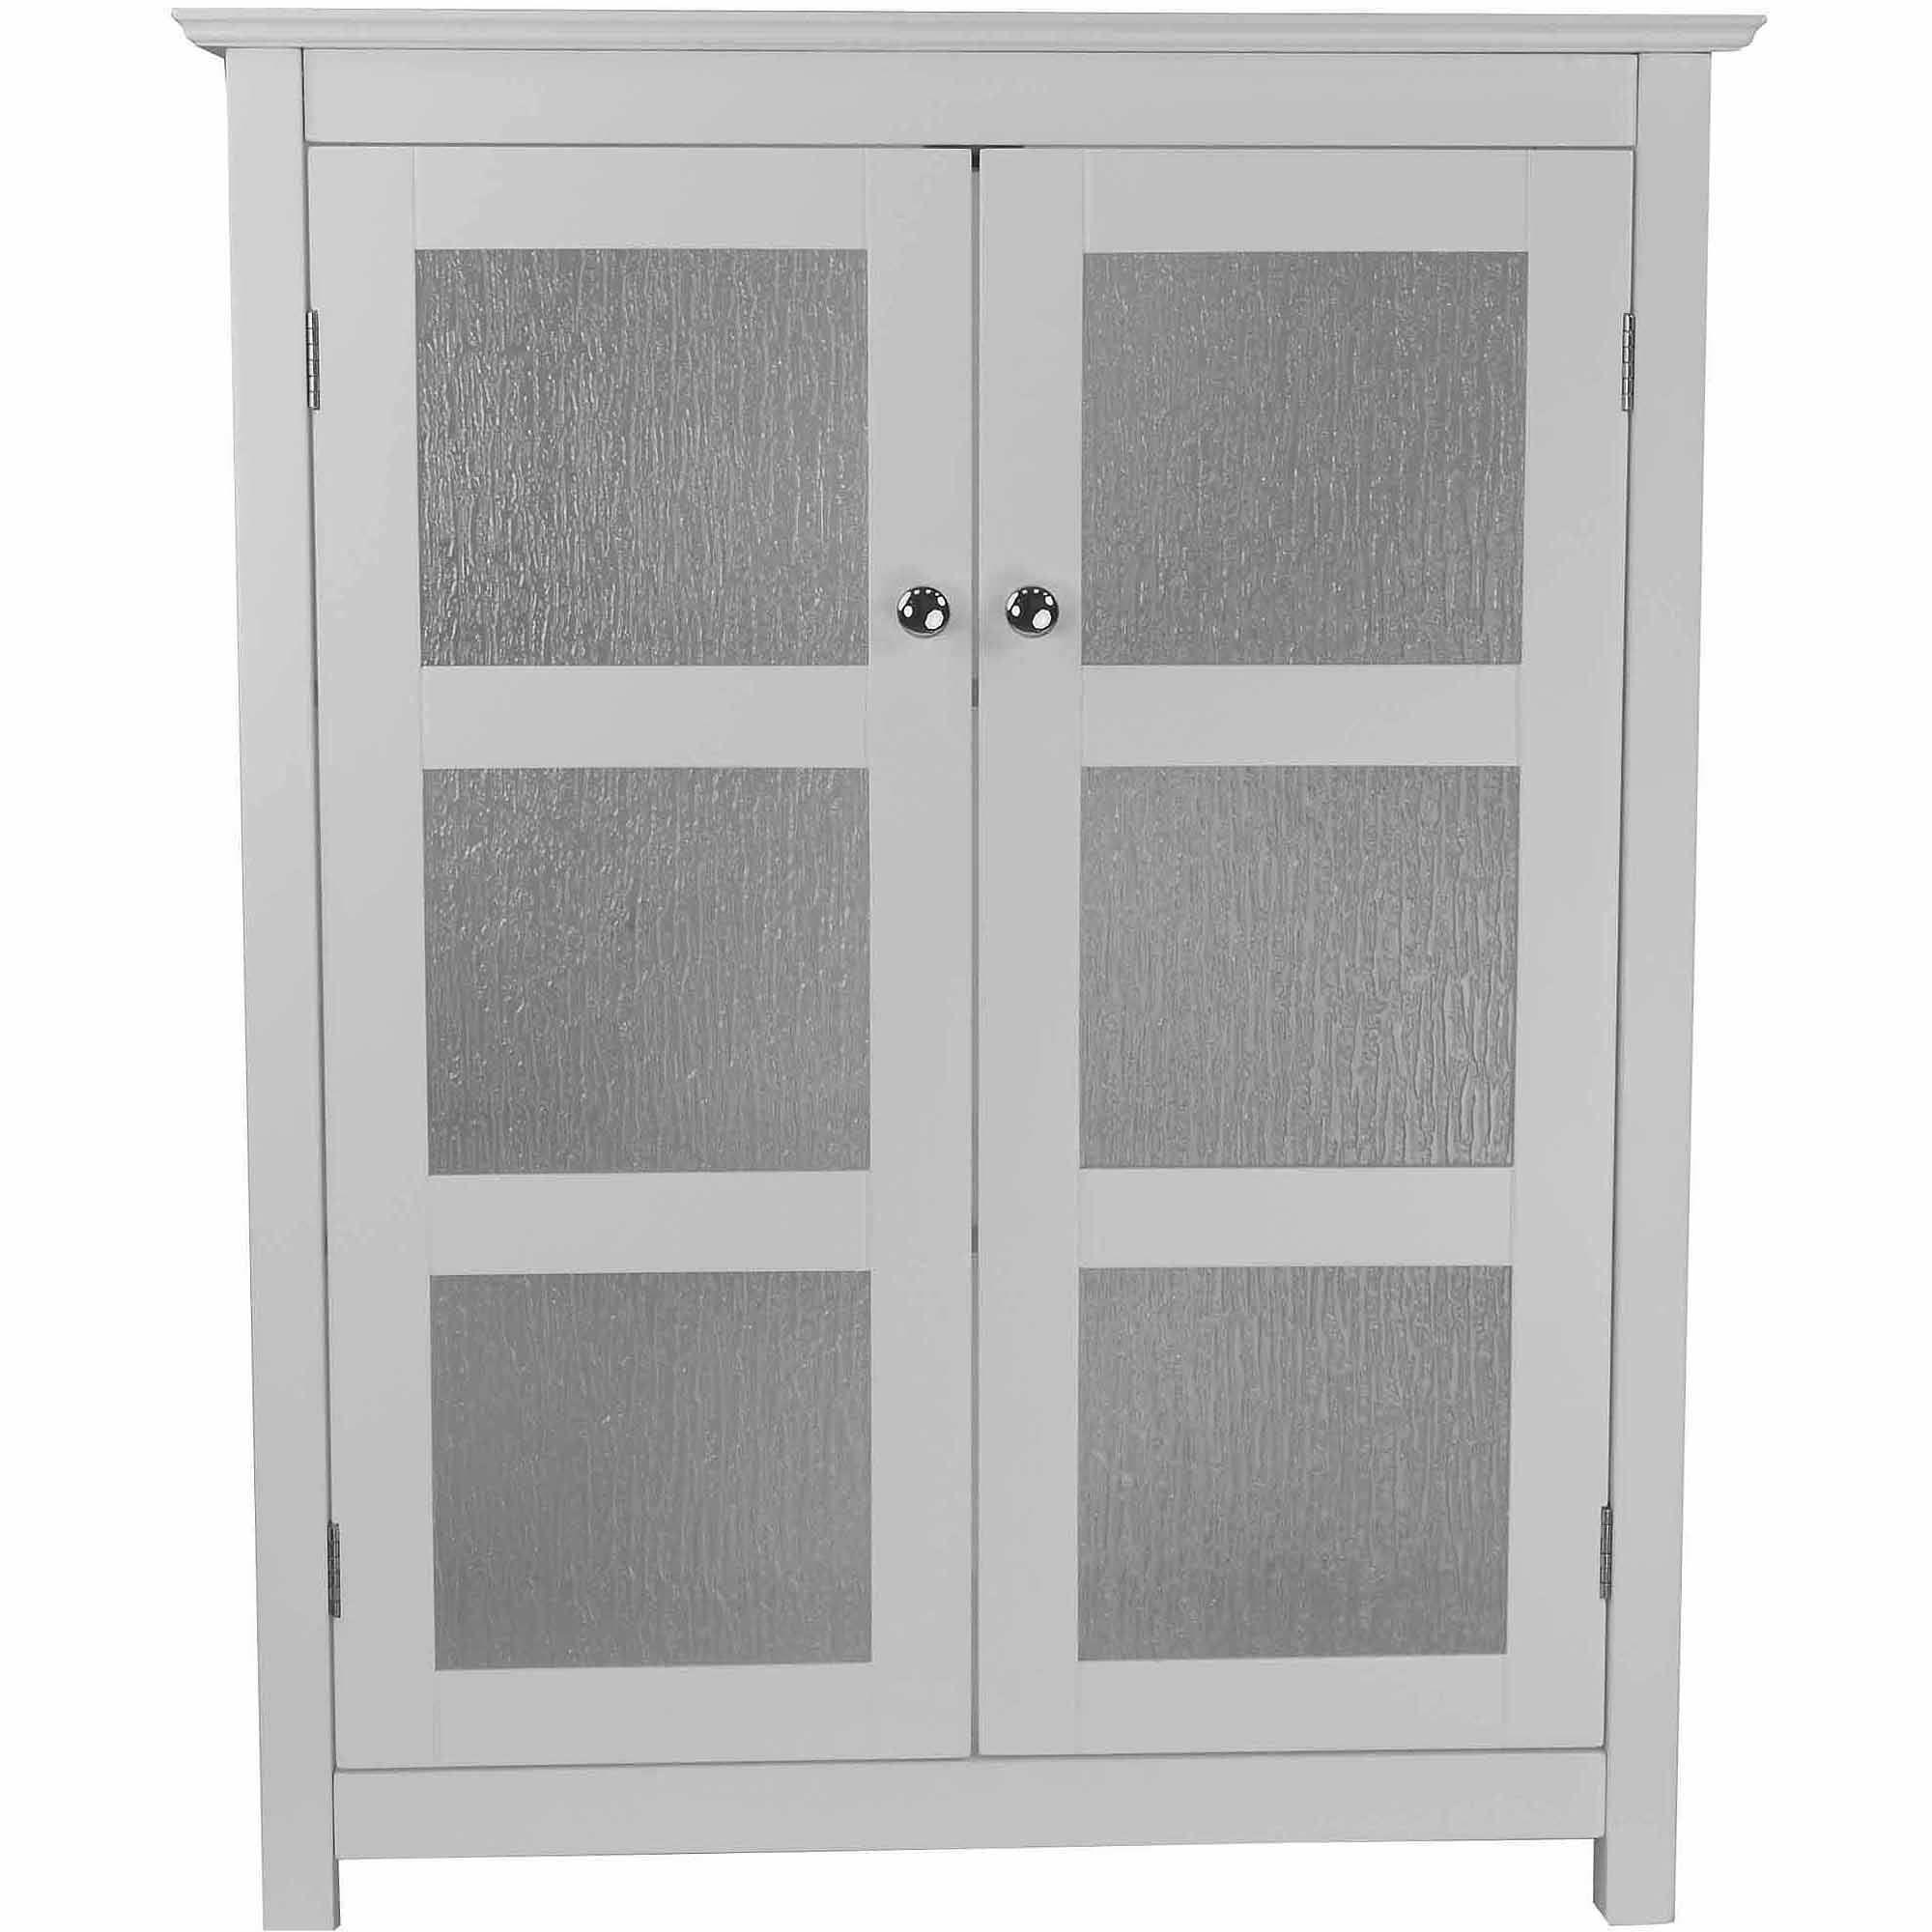 Connor Floor Cabinet with 2 Glass Doors, White - Walmart.com